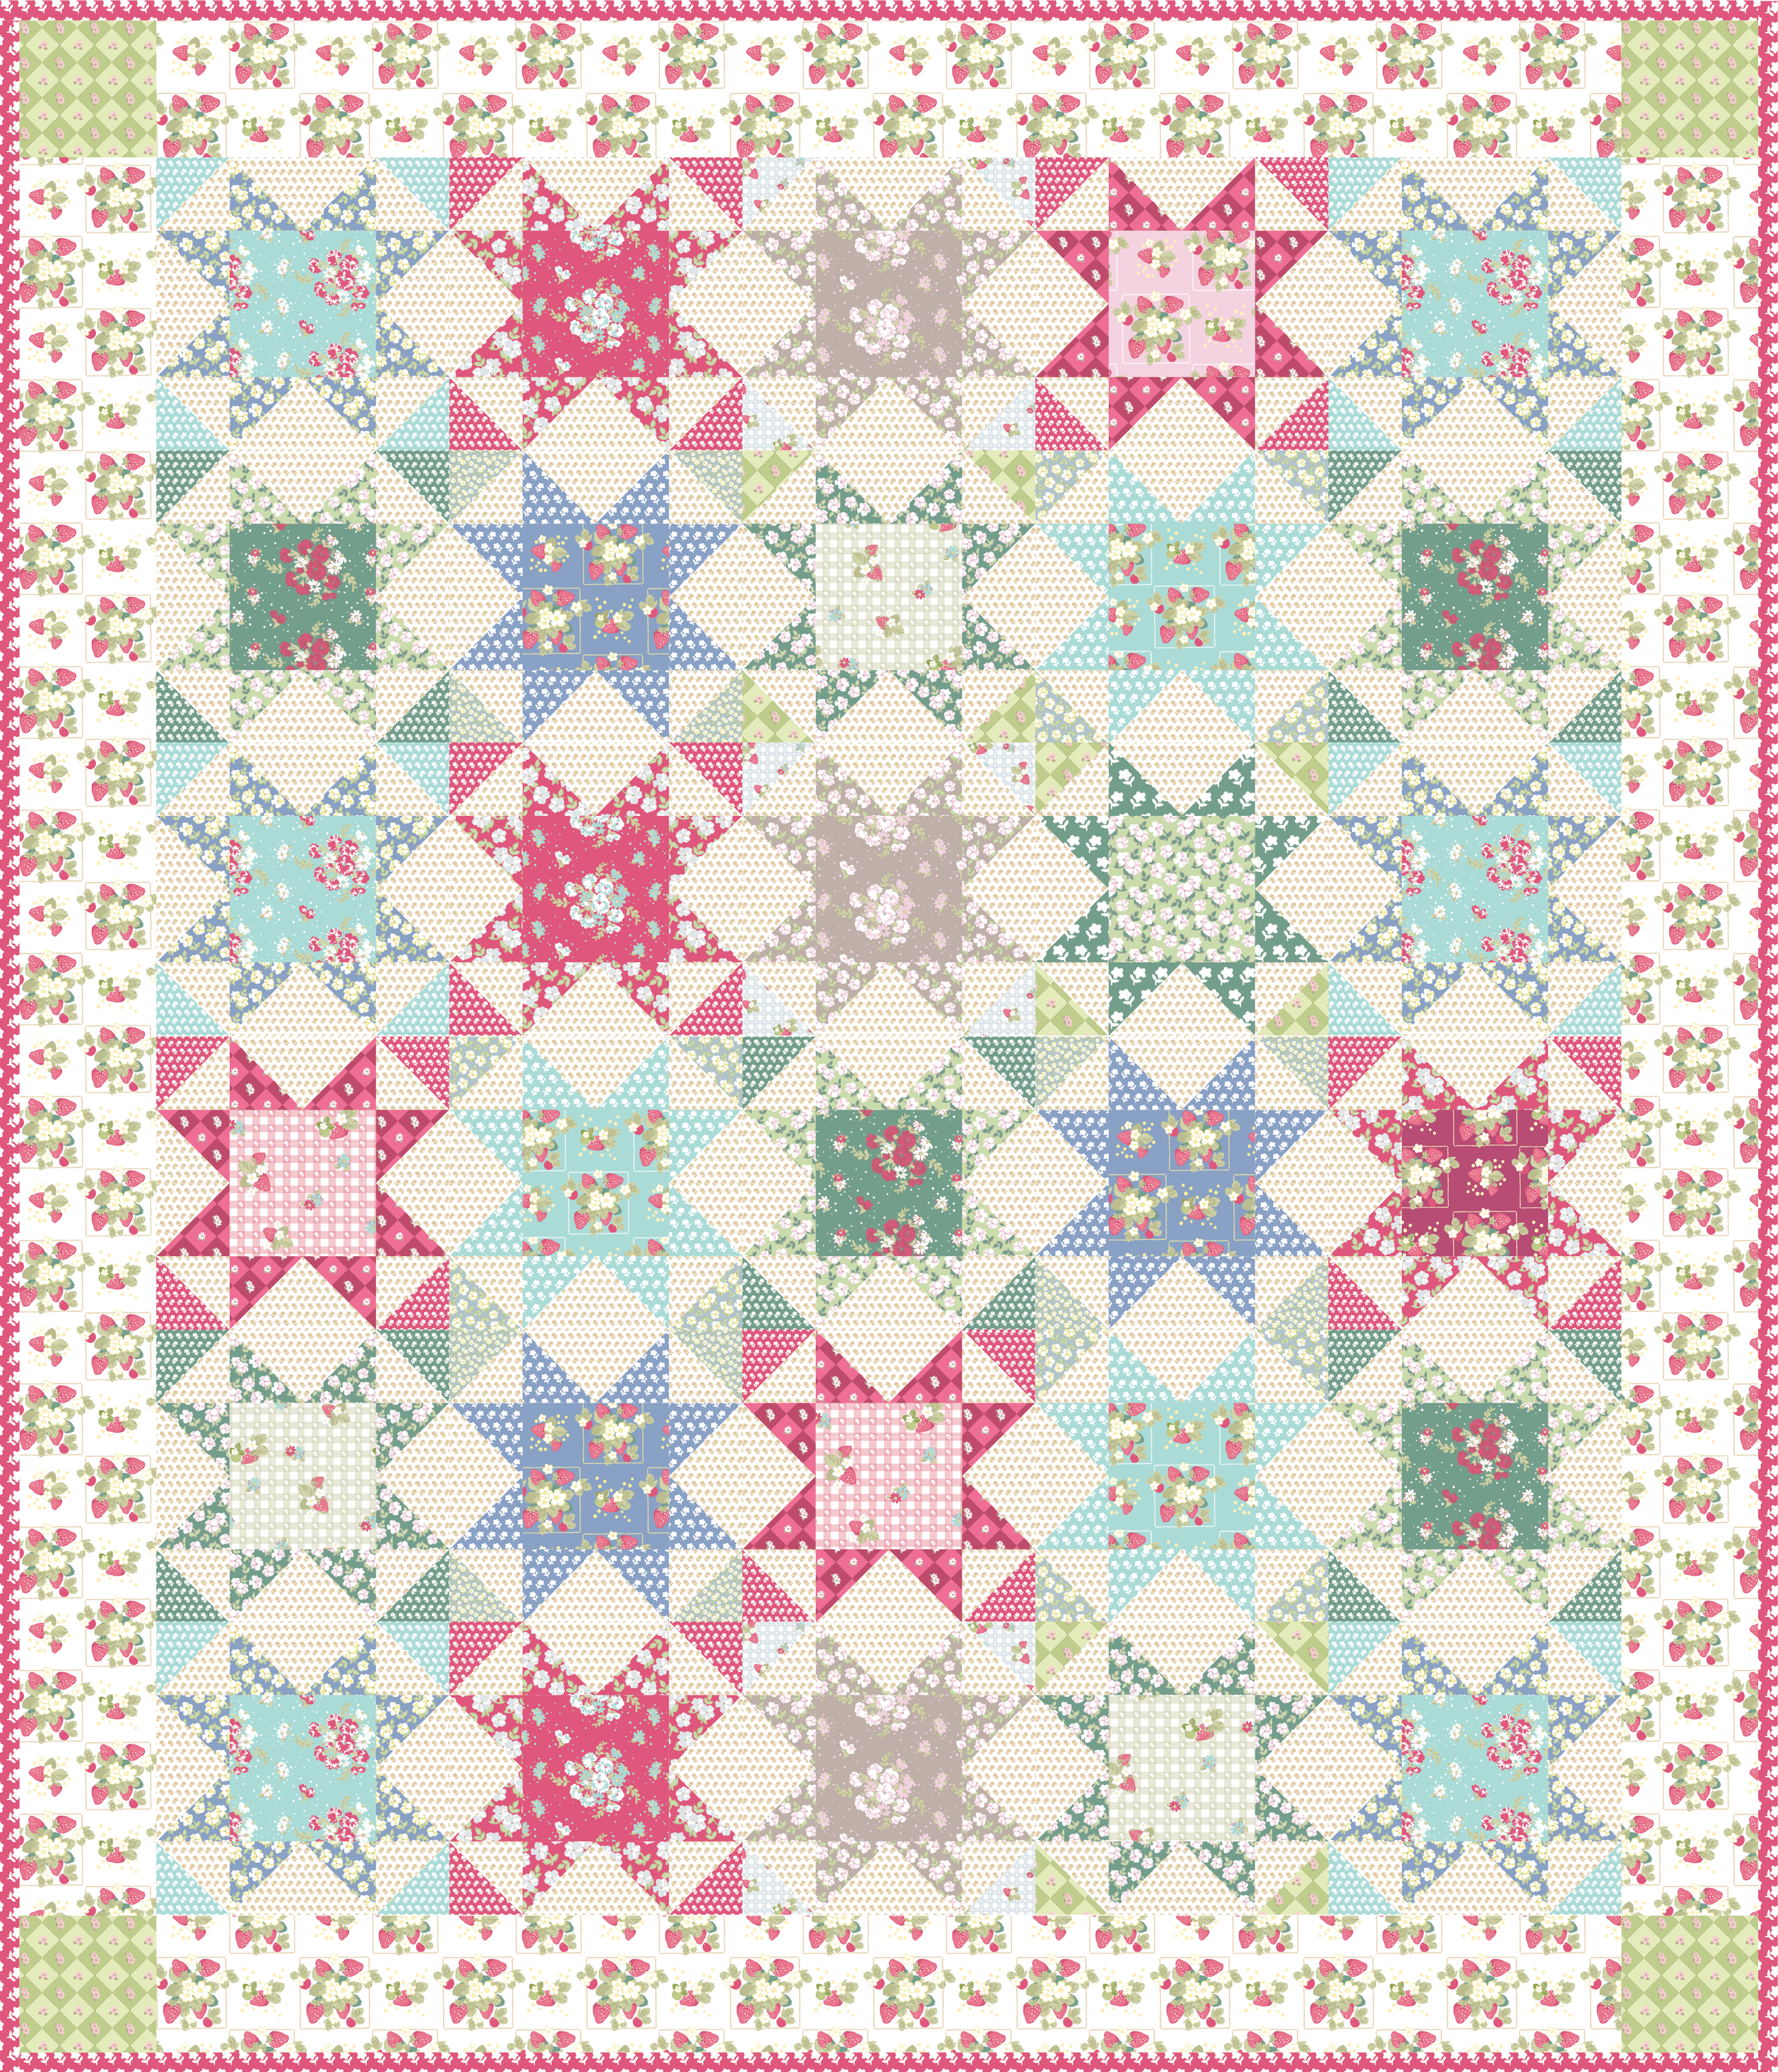 La Conner Stars Quilt designed by Jera Brandvig of Quilting in The Rain for Lecien Fabrics